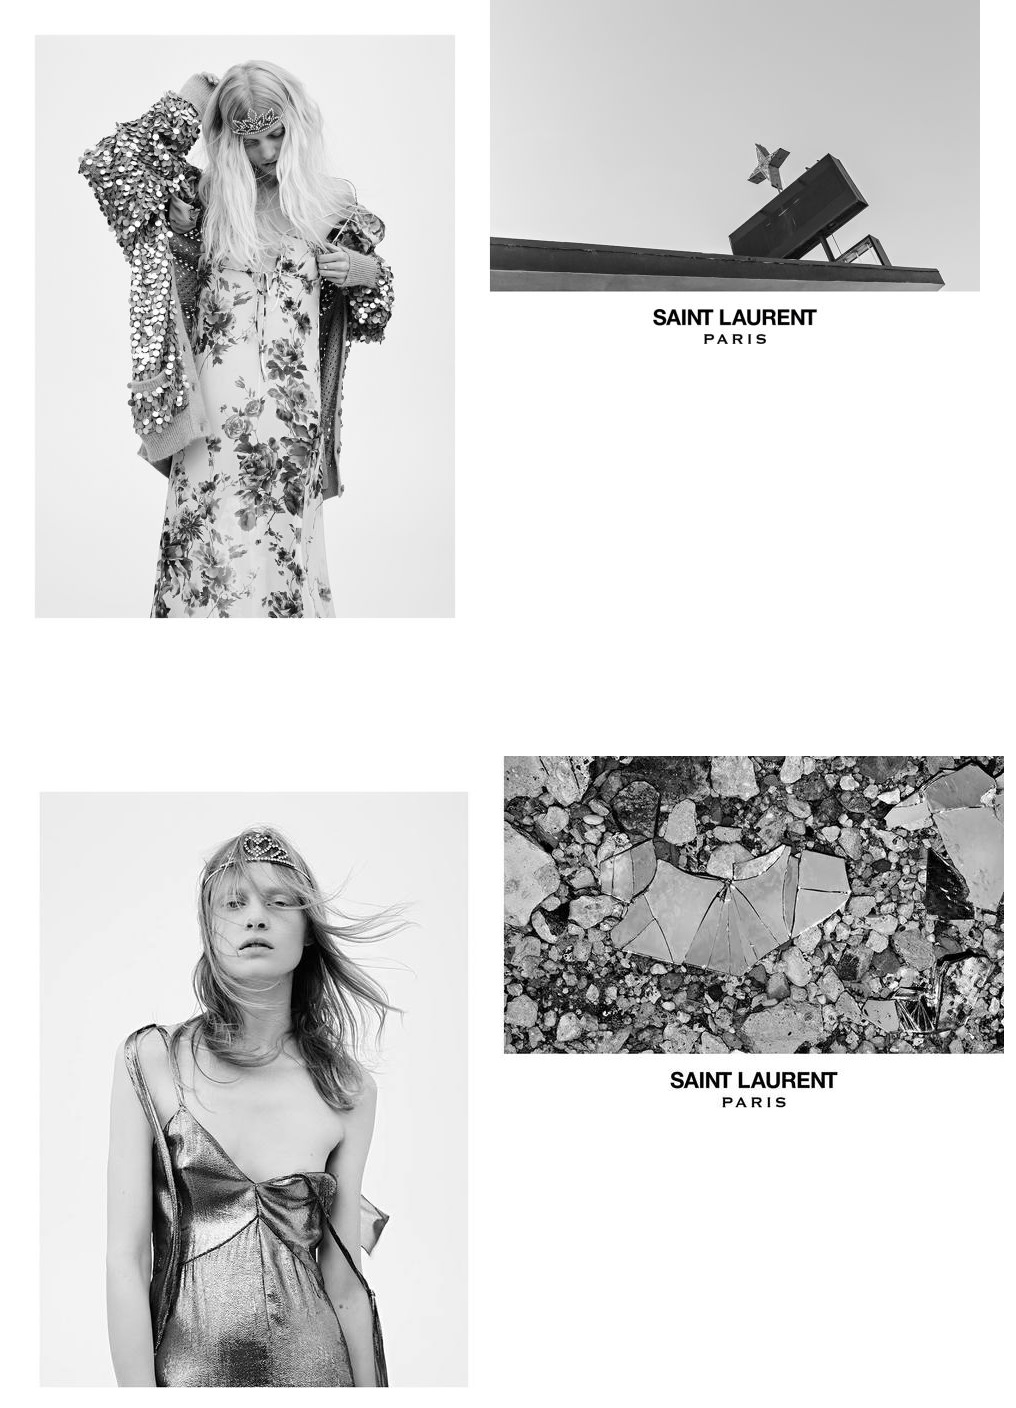 Saint-Laurent spring summer 2016 ad campaign